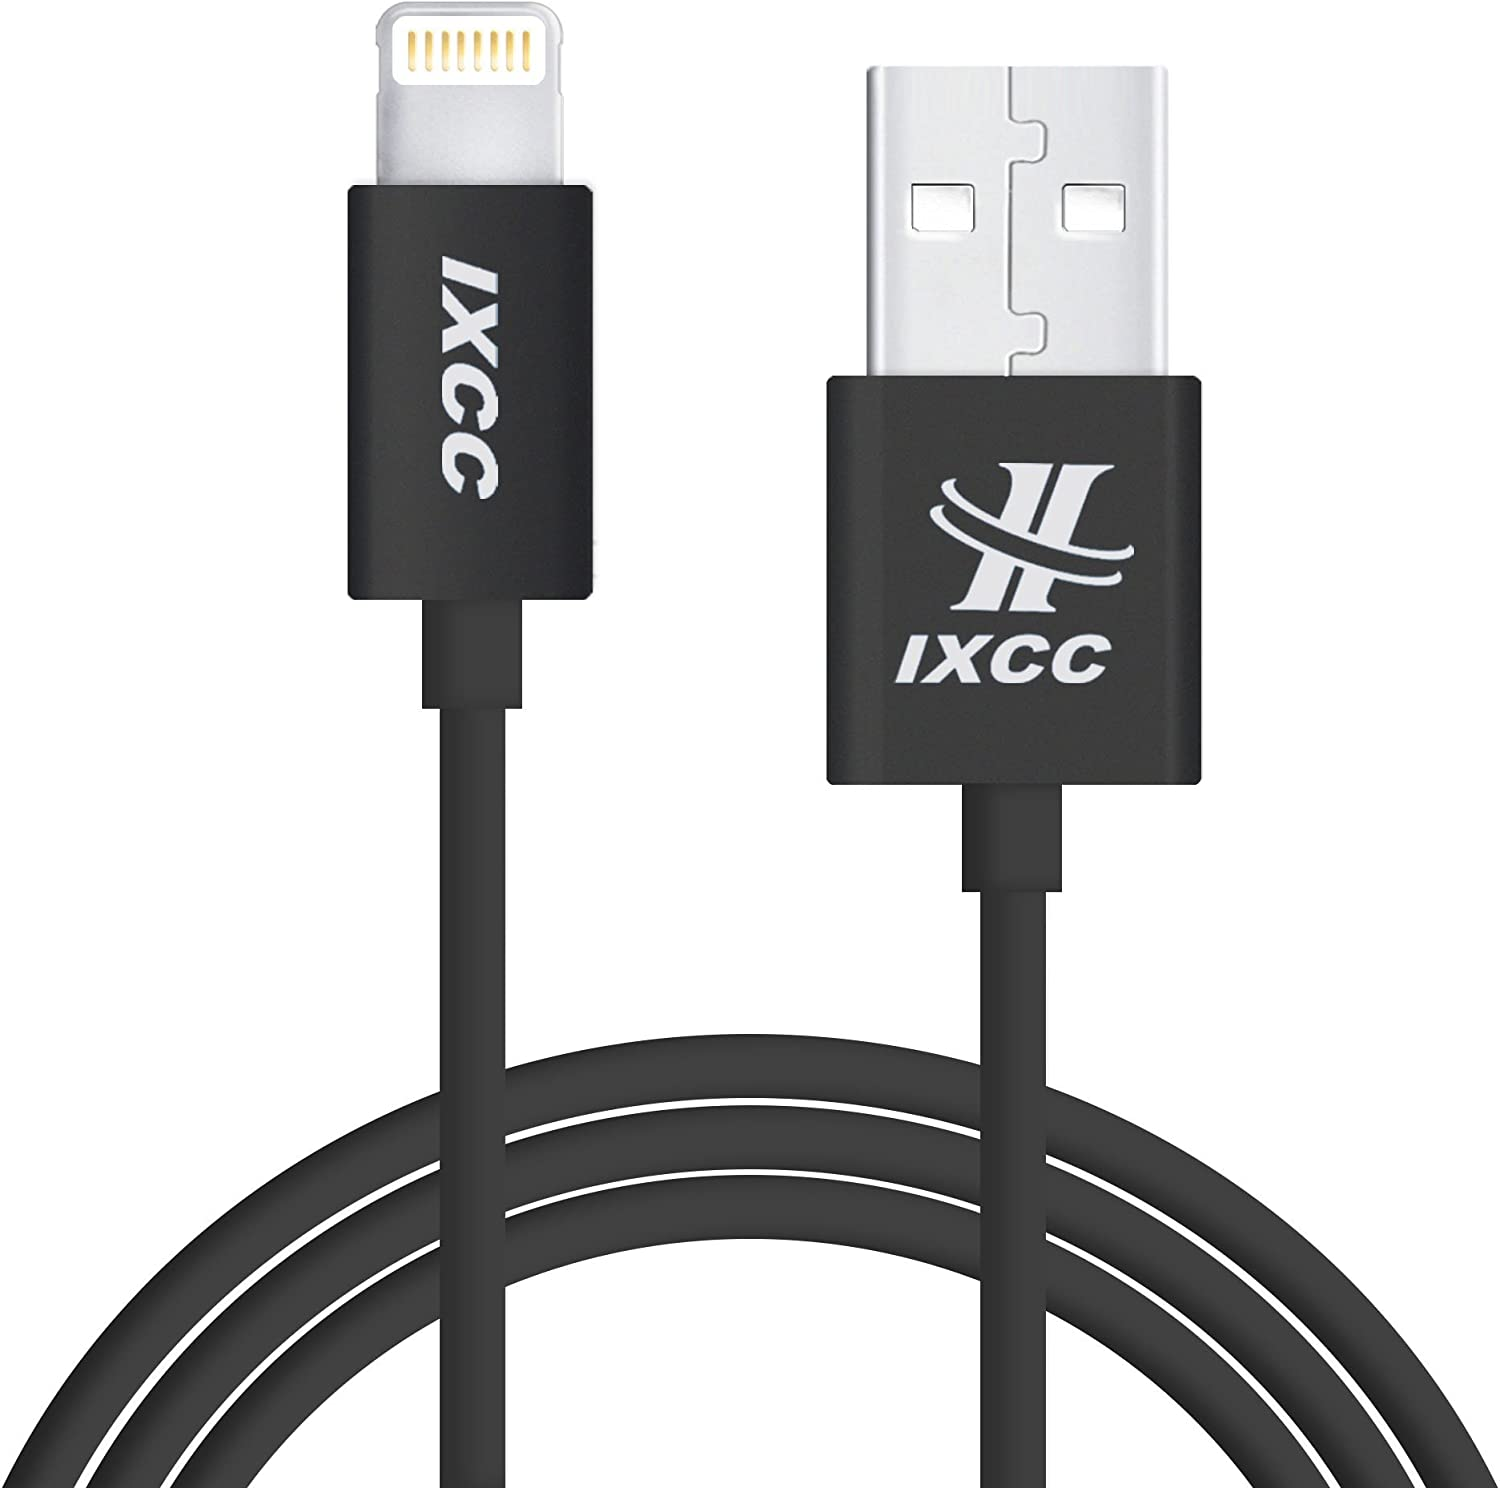 iXCC Element II Lightning Cable 6ft, iPhone Charger, for iPhone 7 6s 6 Plus, SE 5s 5c 5, iPad Air 2 Pro, iPad Mini 2 3 4, iPad 4th Gen [Apple MFi Certified](Black)